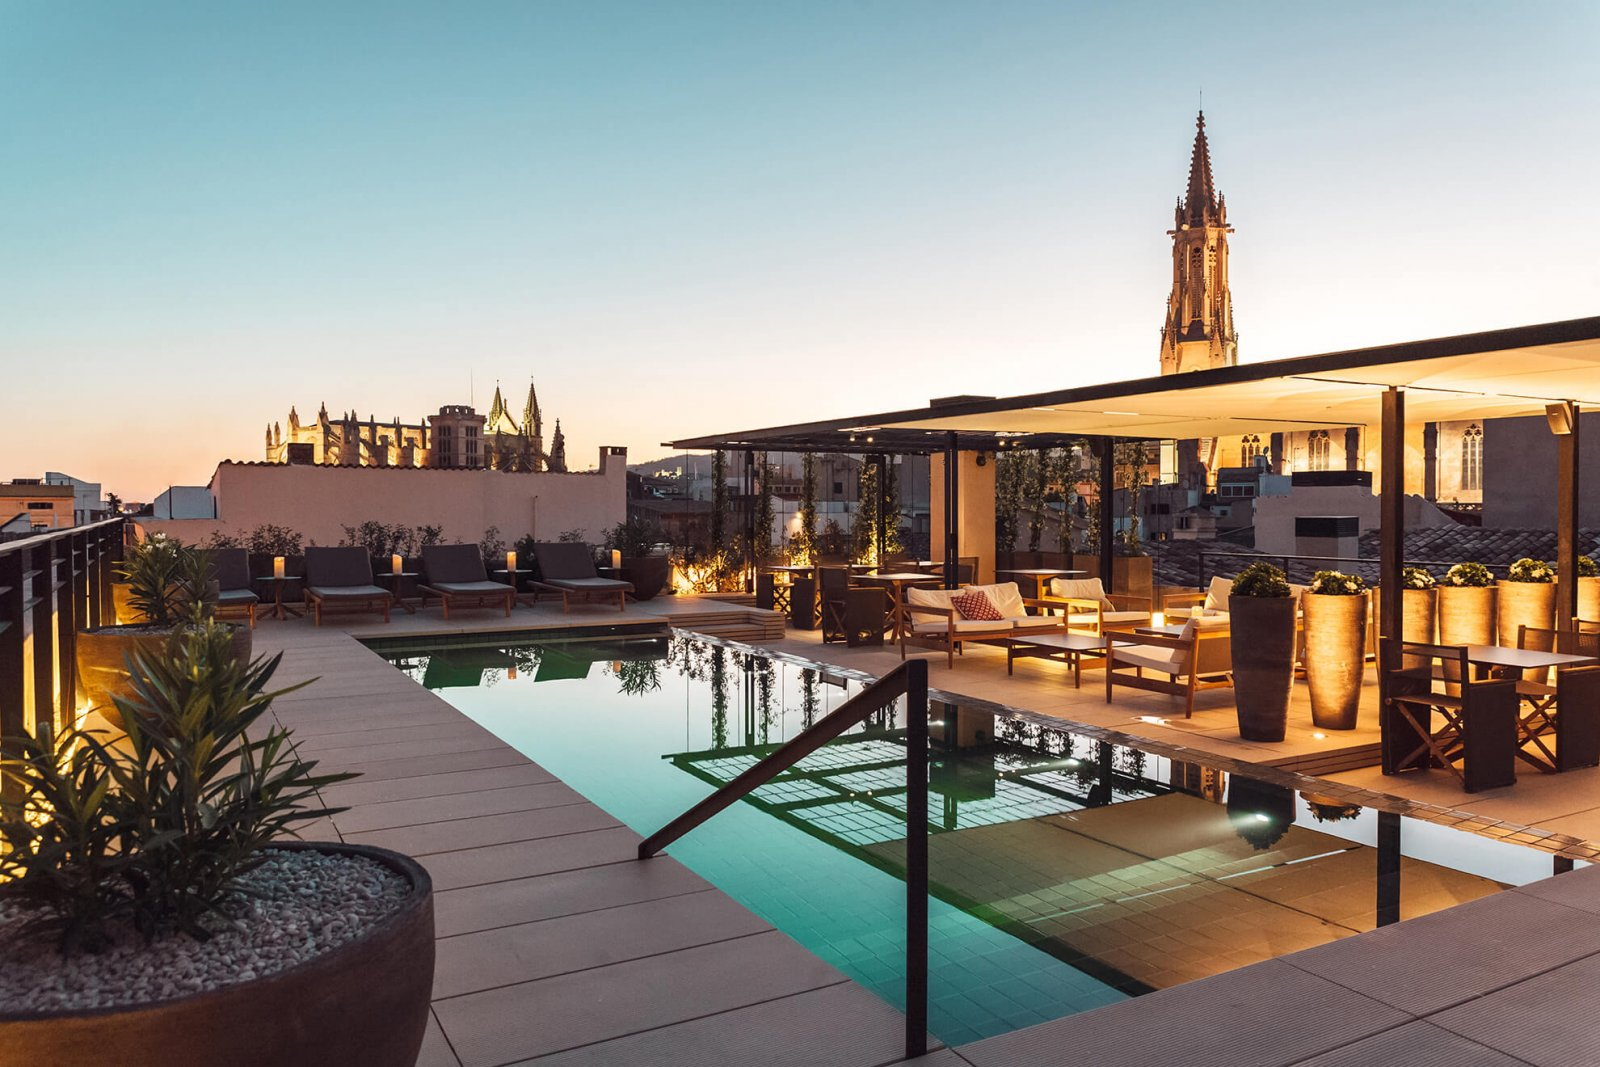 View of the upper terrace with chill out area, pool and views of the city at Sant Francesc Hotel Boutique during sunset